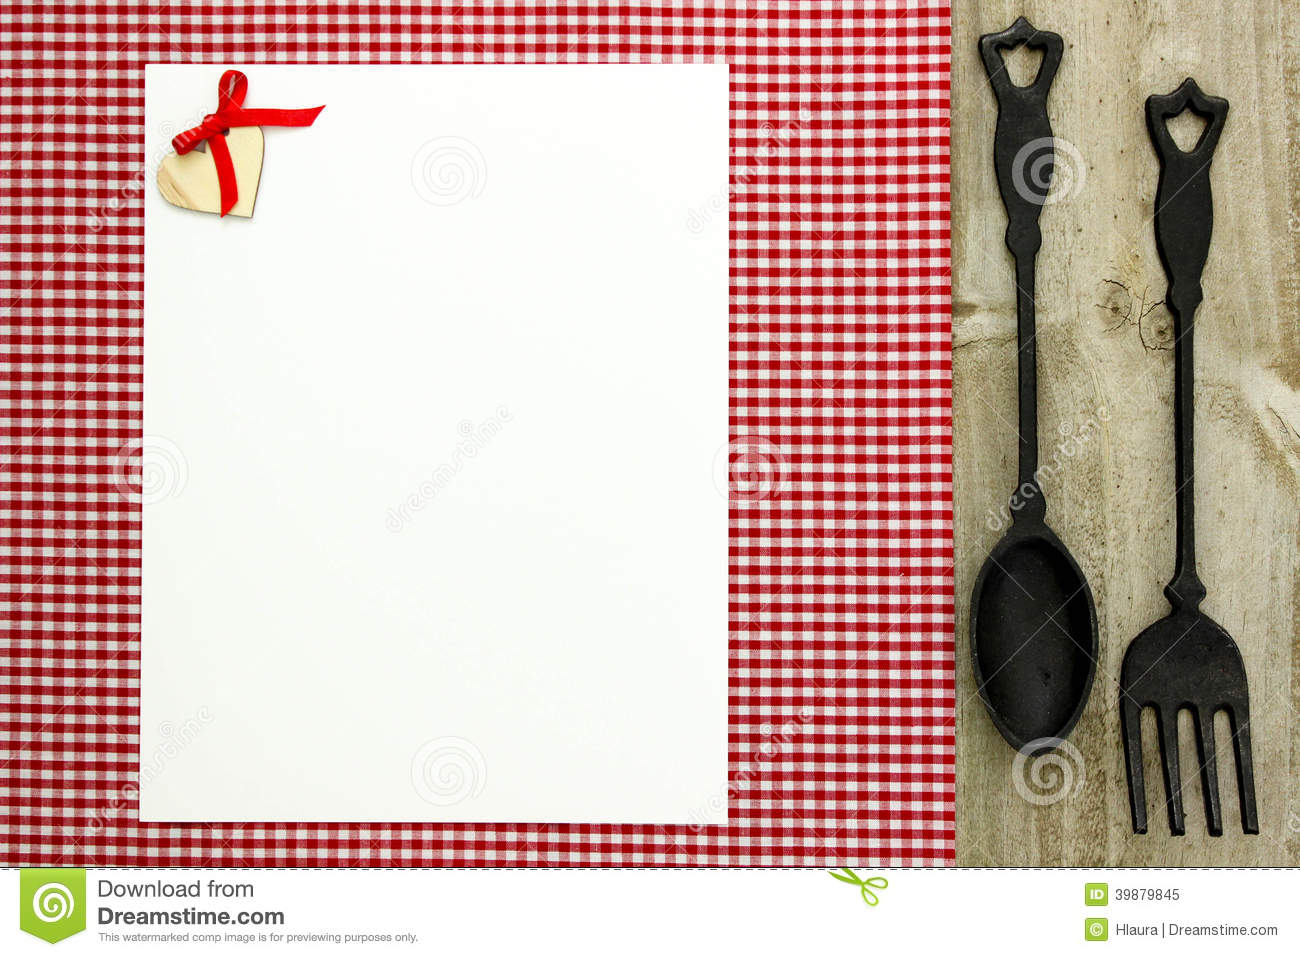 Blank White Menu Sign On Red Checkered Tablecloth With Cast Iron Spoon And Fork Stock Photo